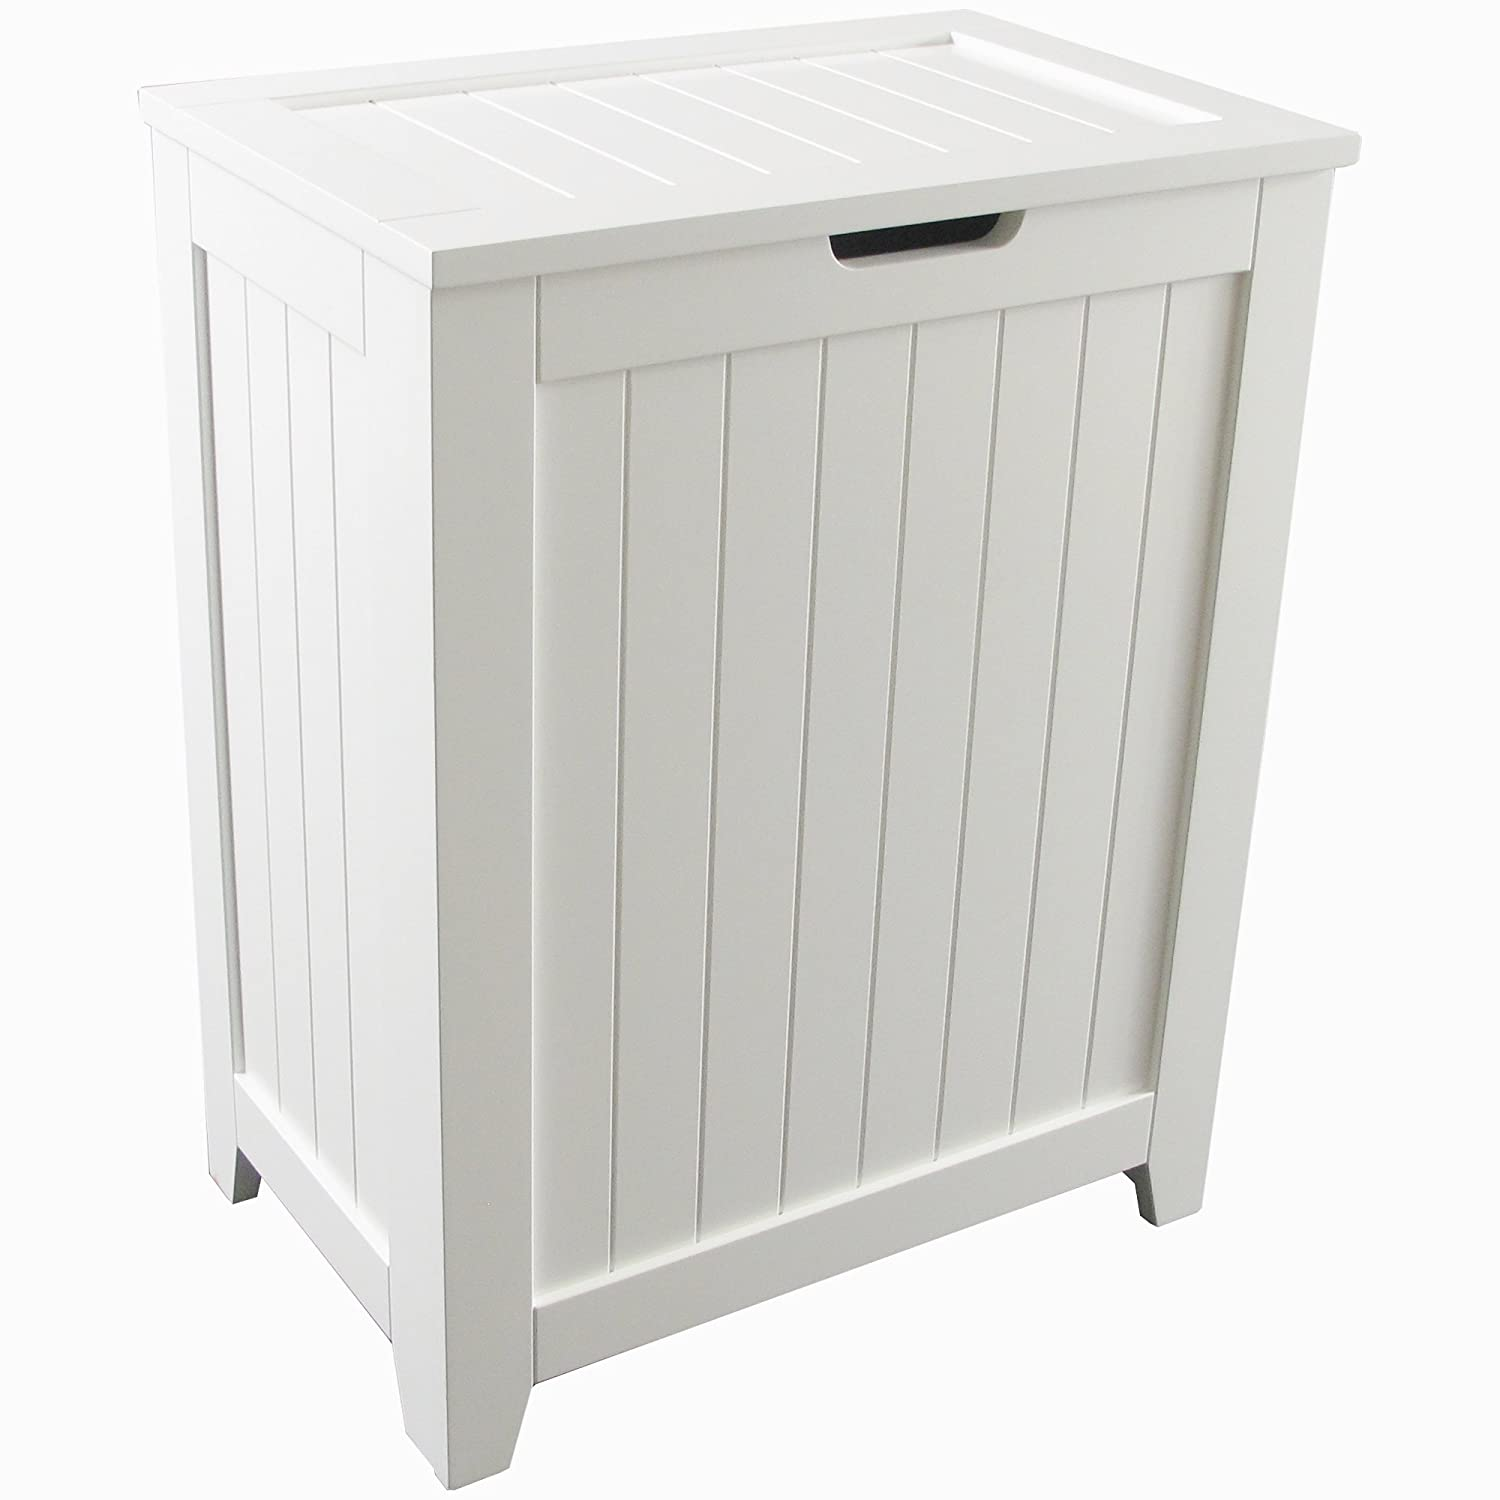 Redmon KD Contemporary Country Hamper 5220